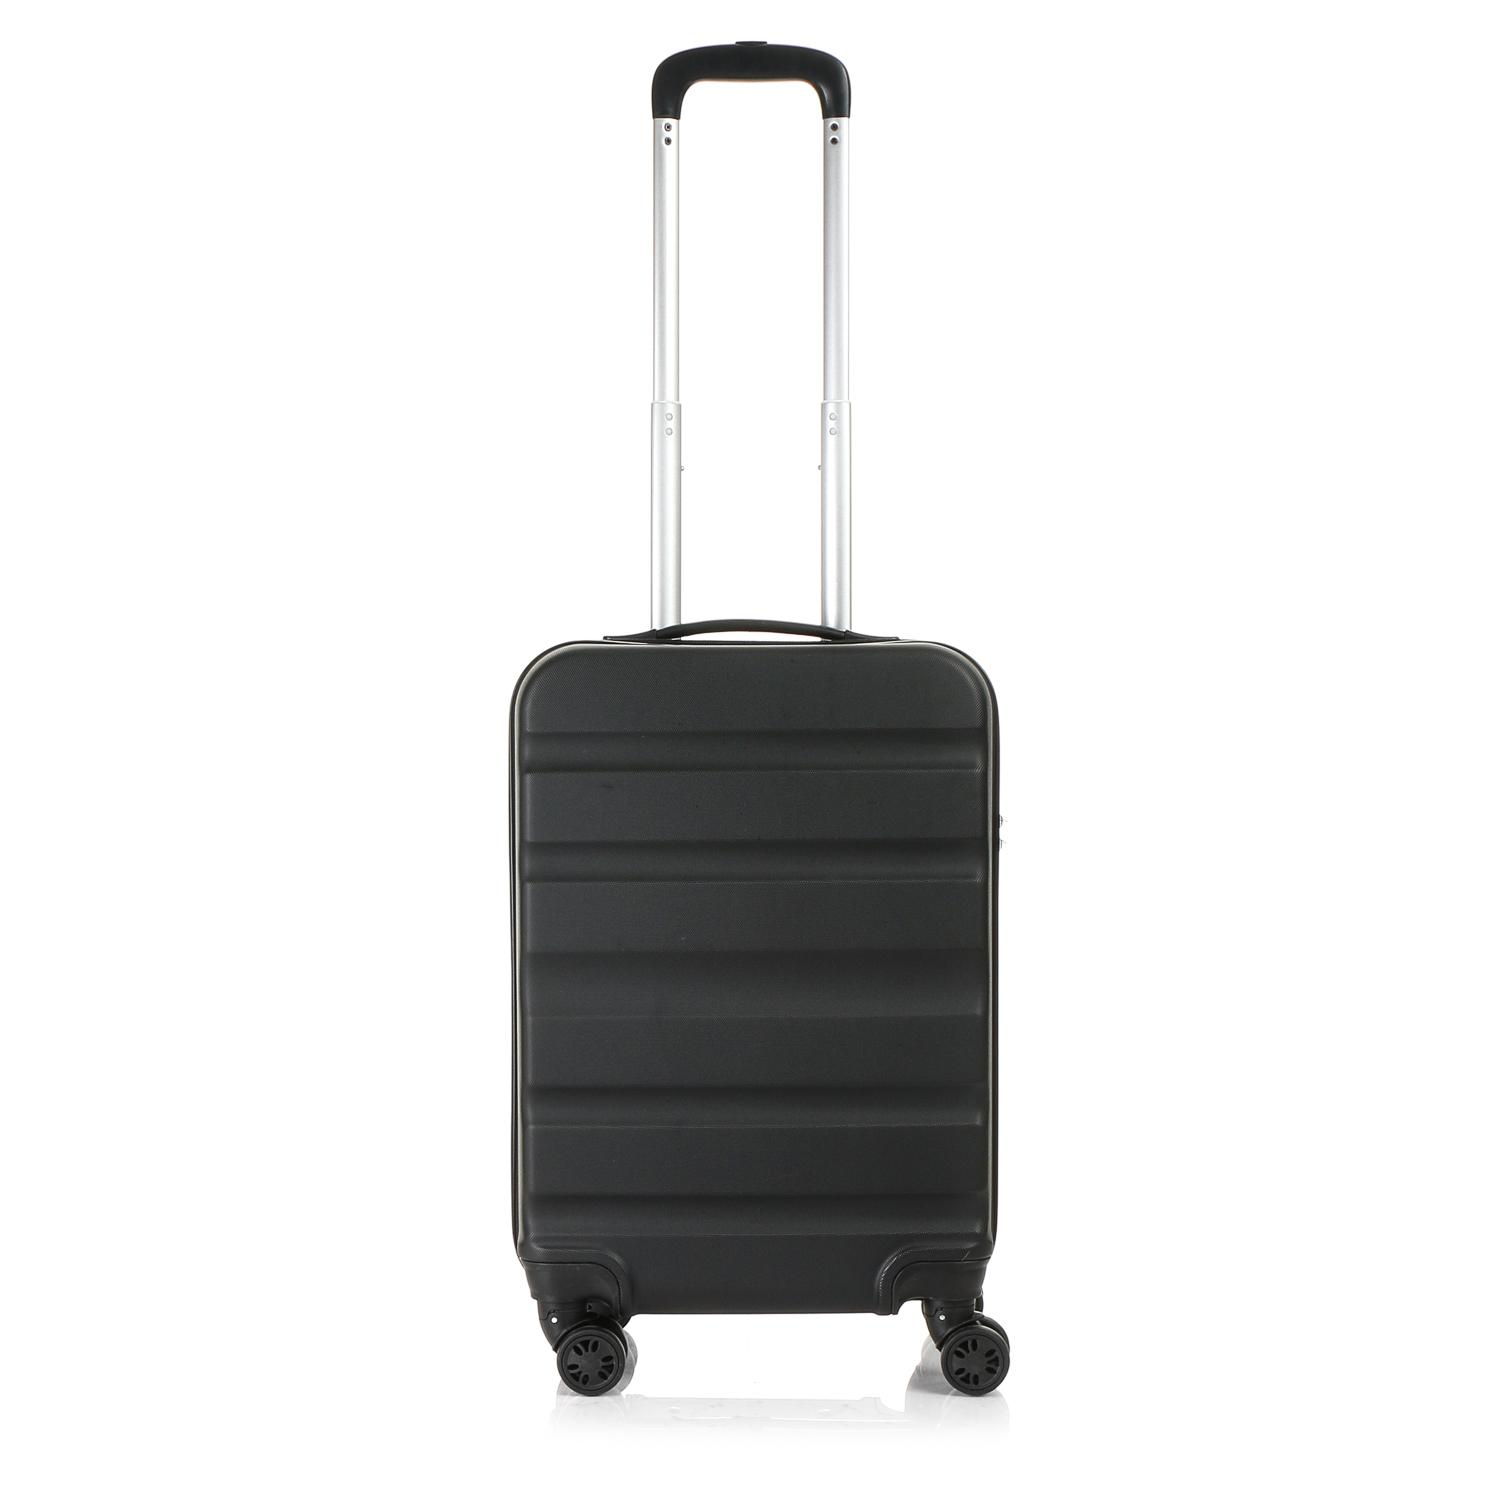 bdfde757b Luggage for sale - Luggage Bag online brands, prices & reviews in ...